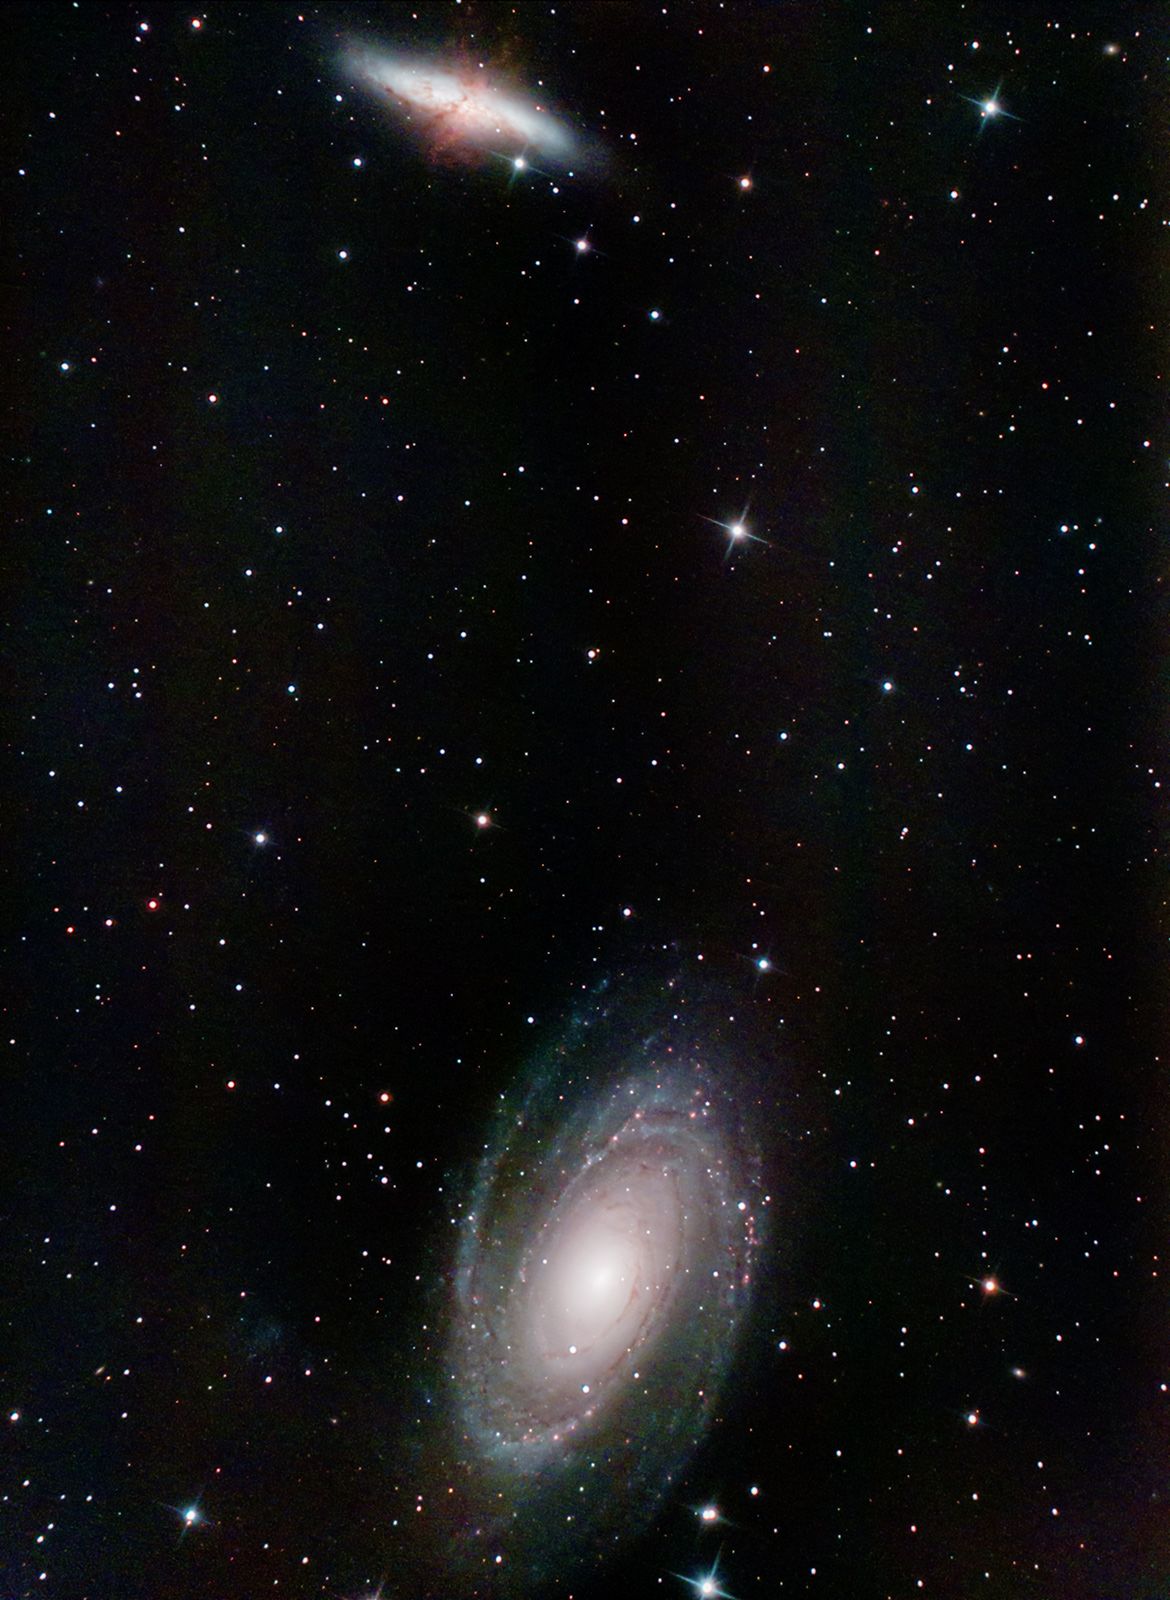 M81 & M82 in Ursa Major. Imaged from Kendal